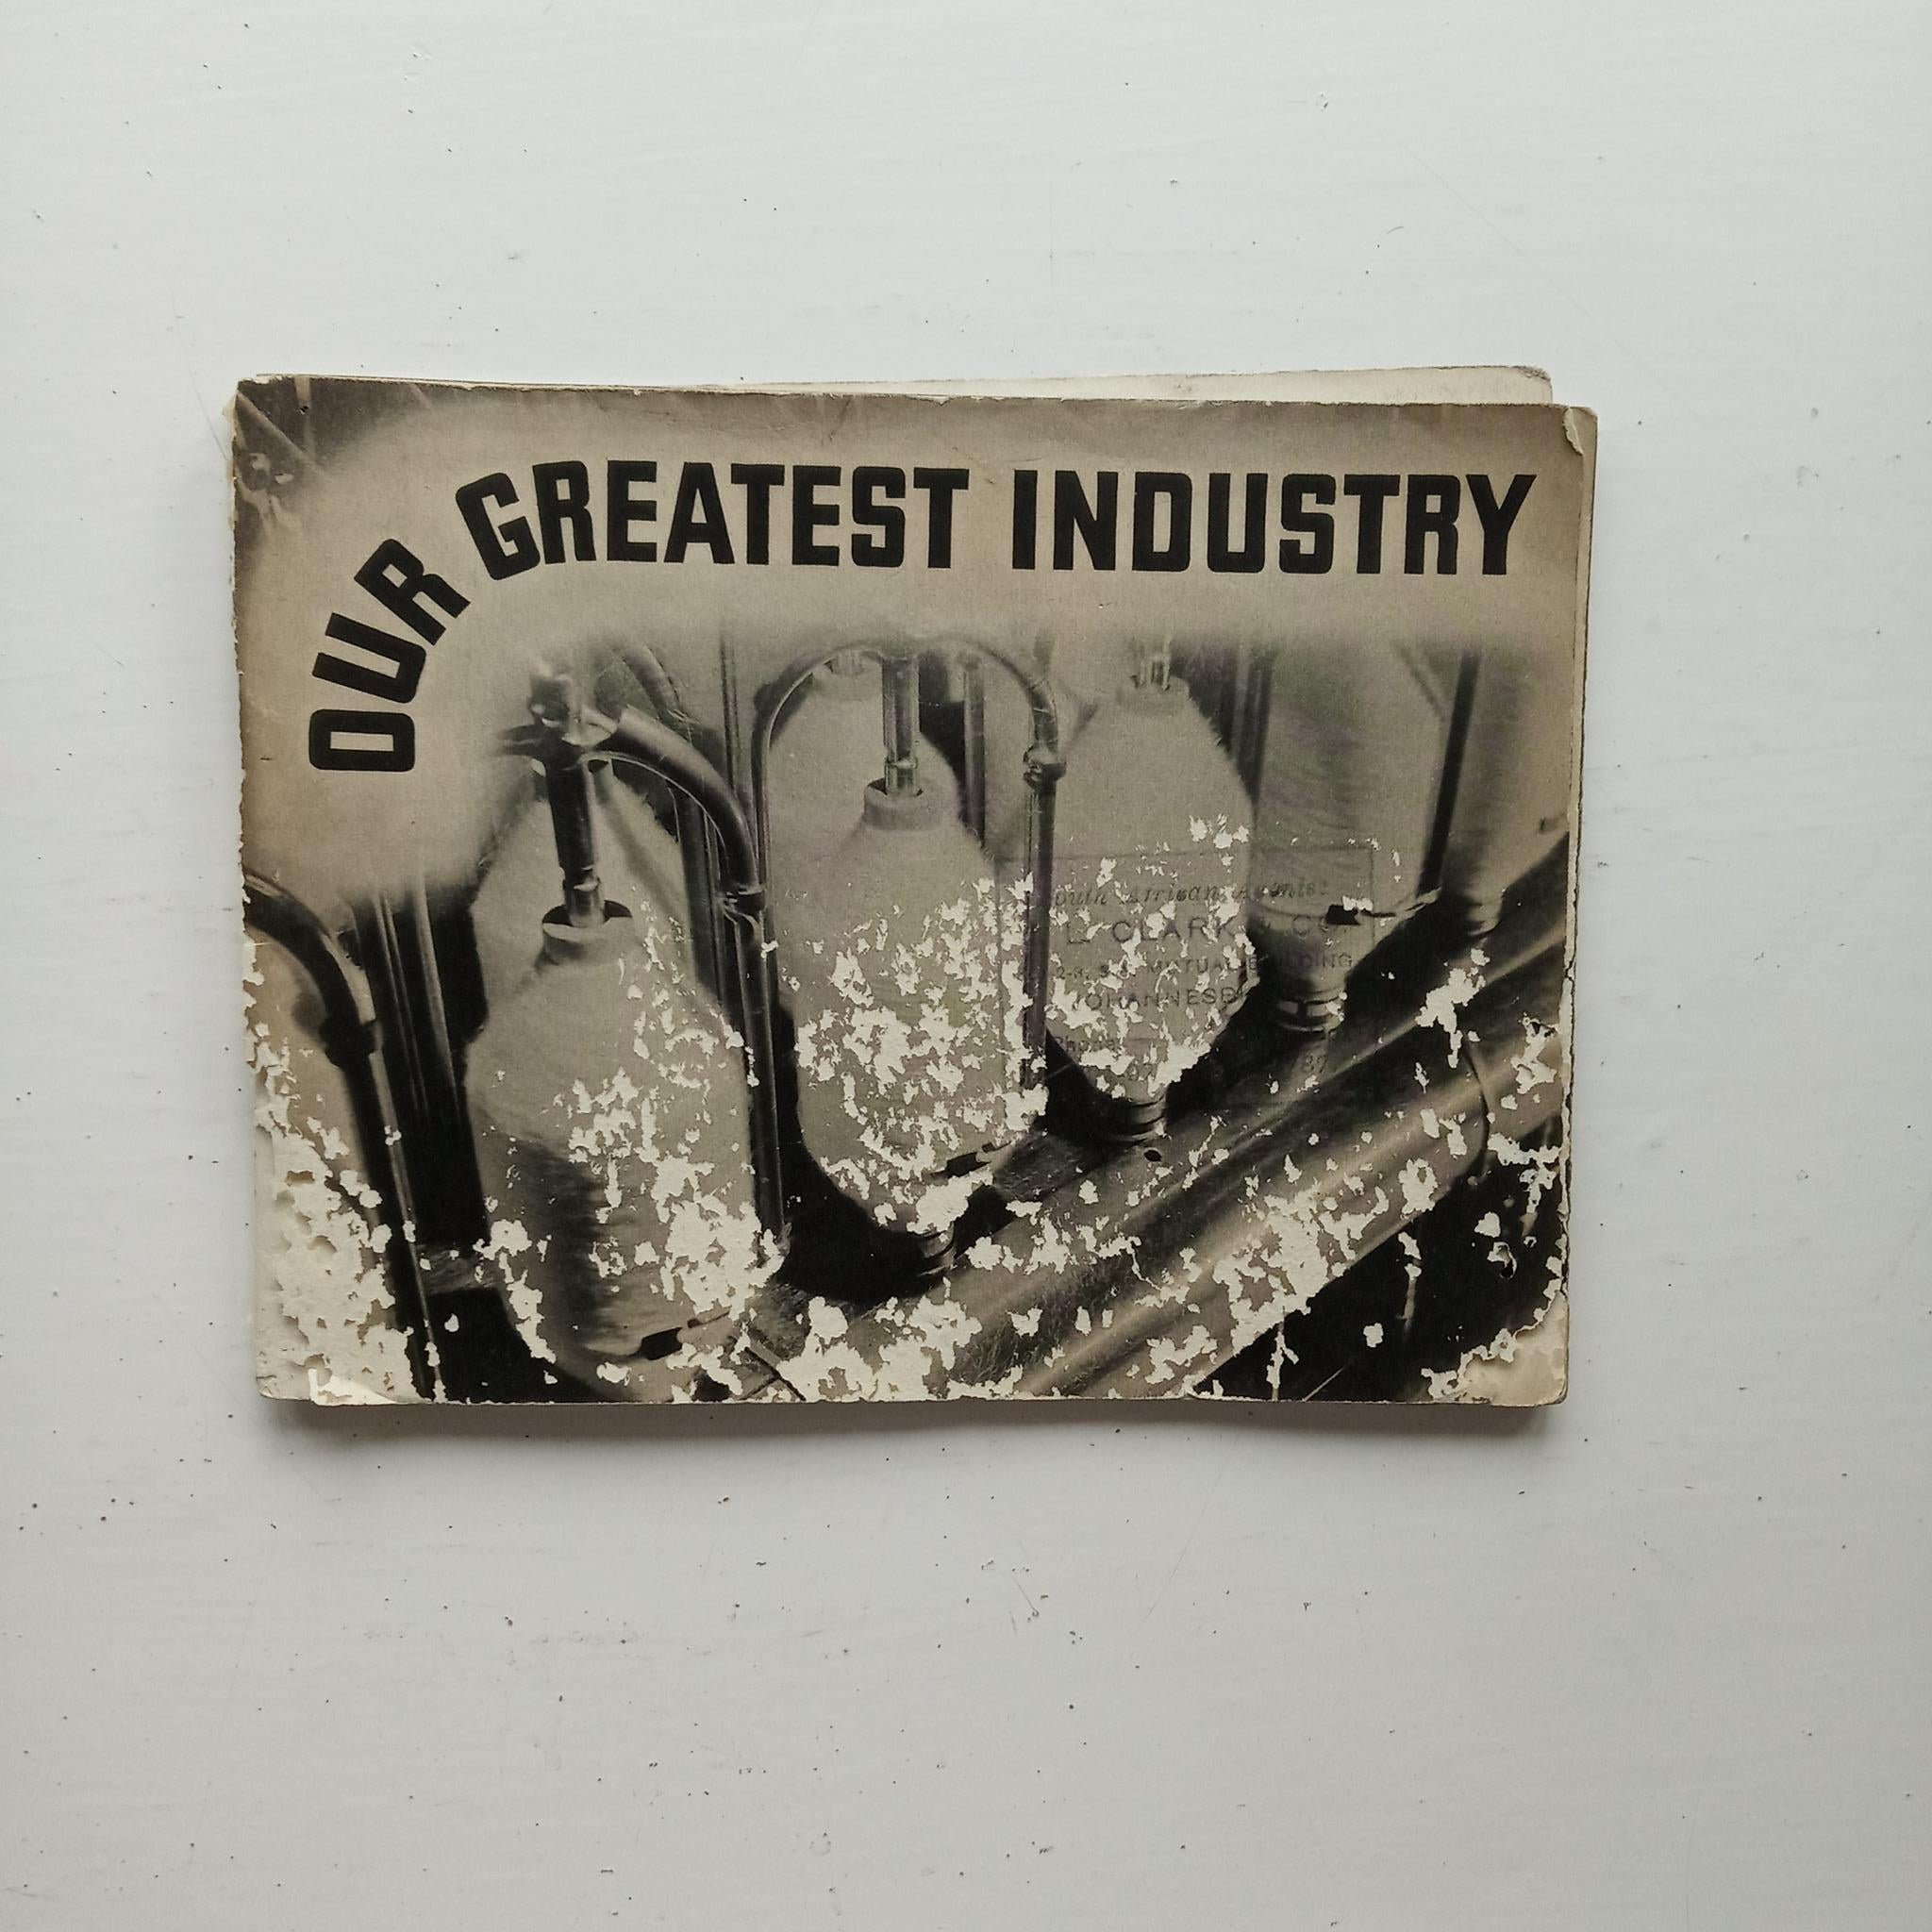 Our Greatest Industry by Pepperell Manufacturing Company